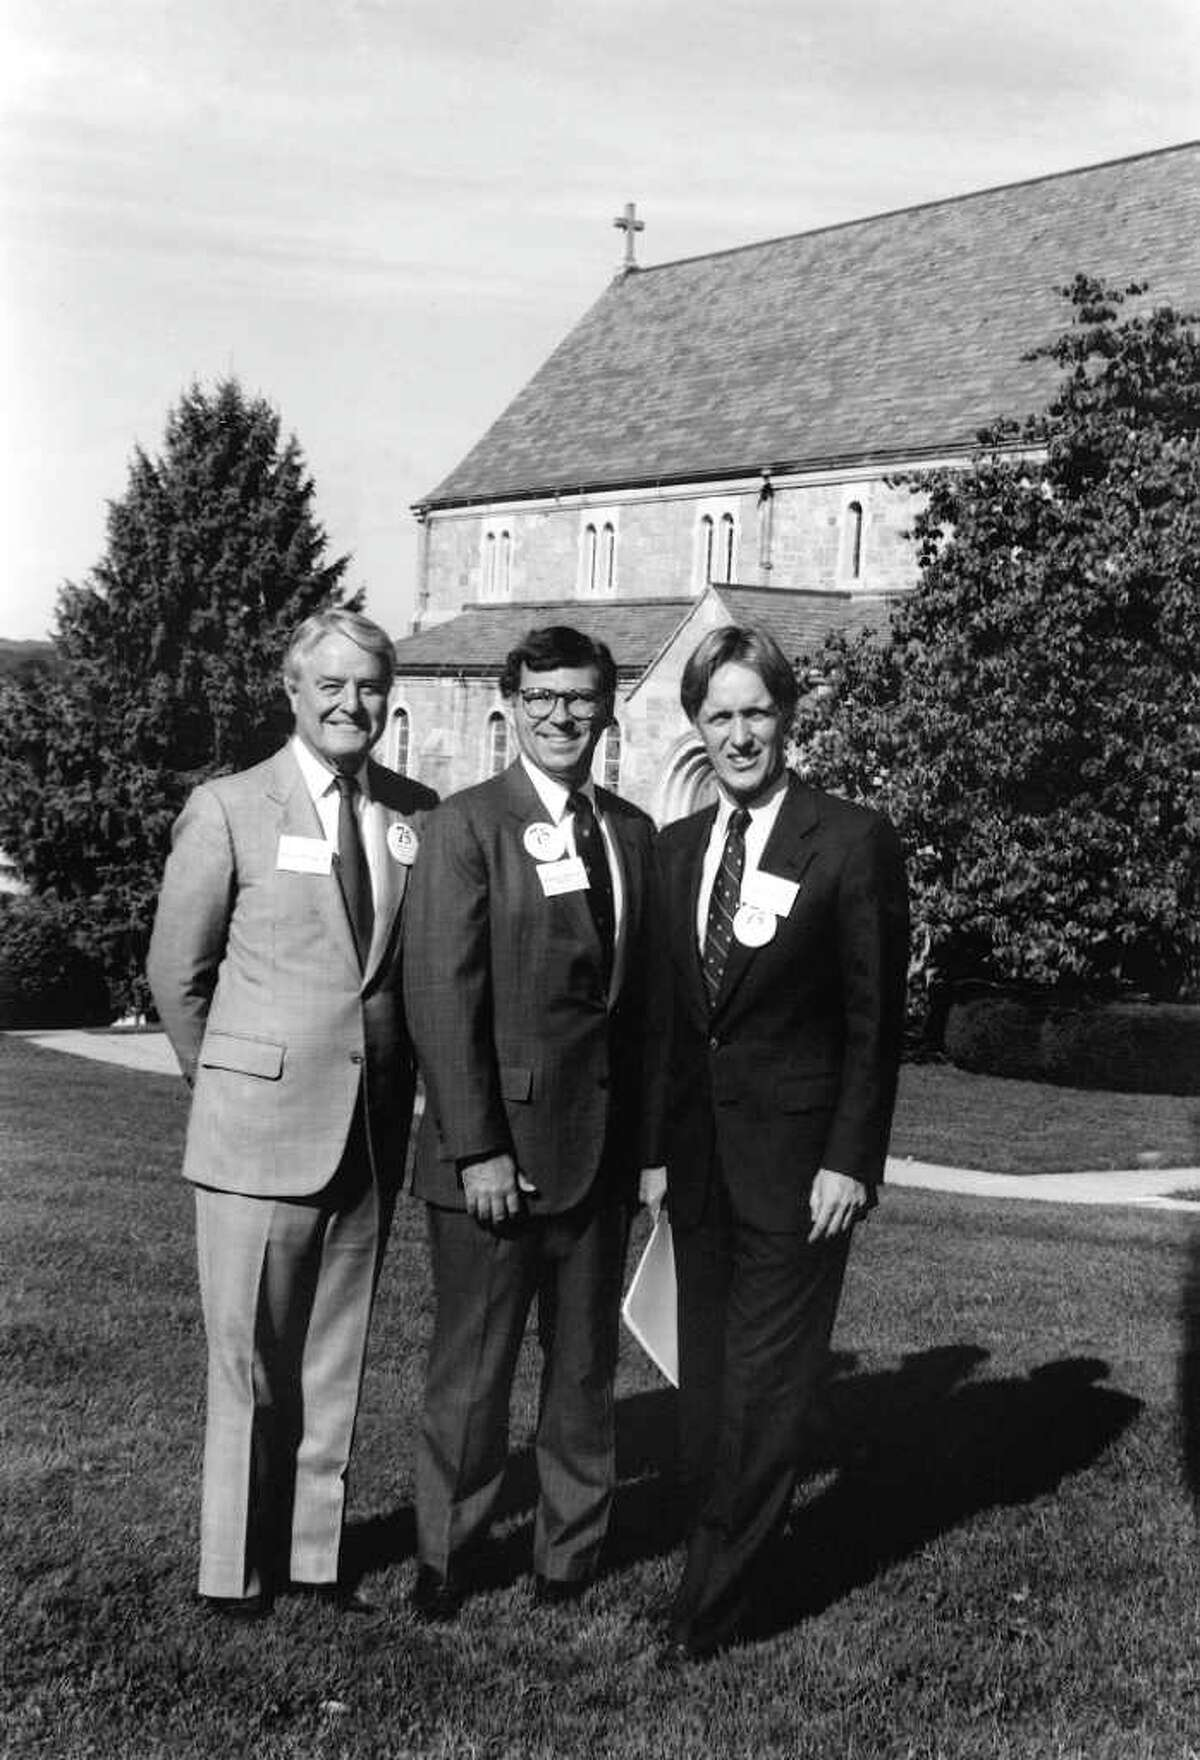 At Canterbury's 75th Anniversary celebration (October 6, 1990) - L-r: R. Sargent Shriver '34 (master of ceremony), Headmaster Tom Sheehy, Tom Gerety '64 (then president of Trinity College in Hartford, CT and keynote speaker).